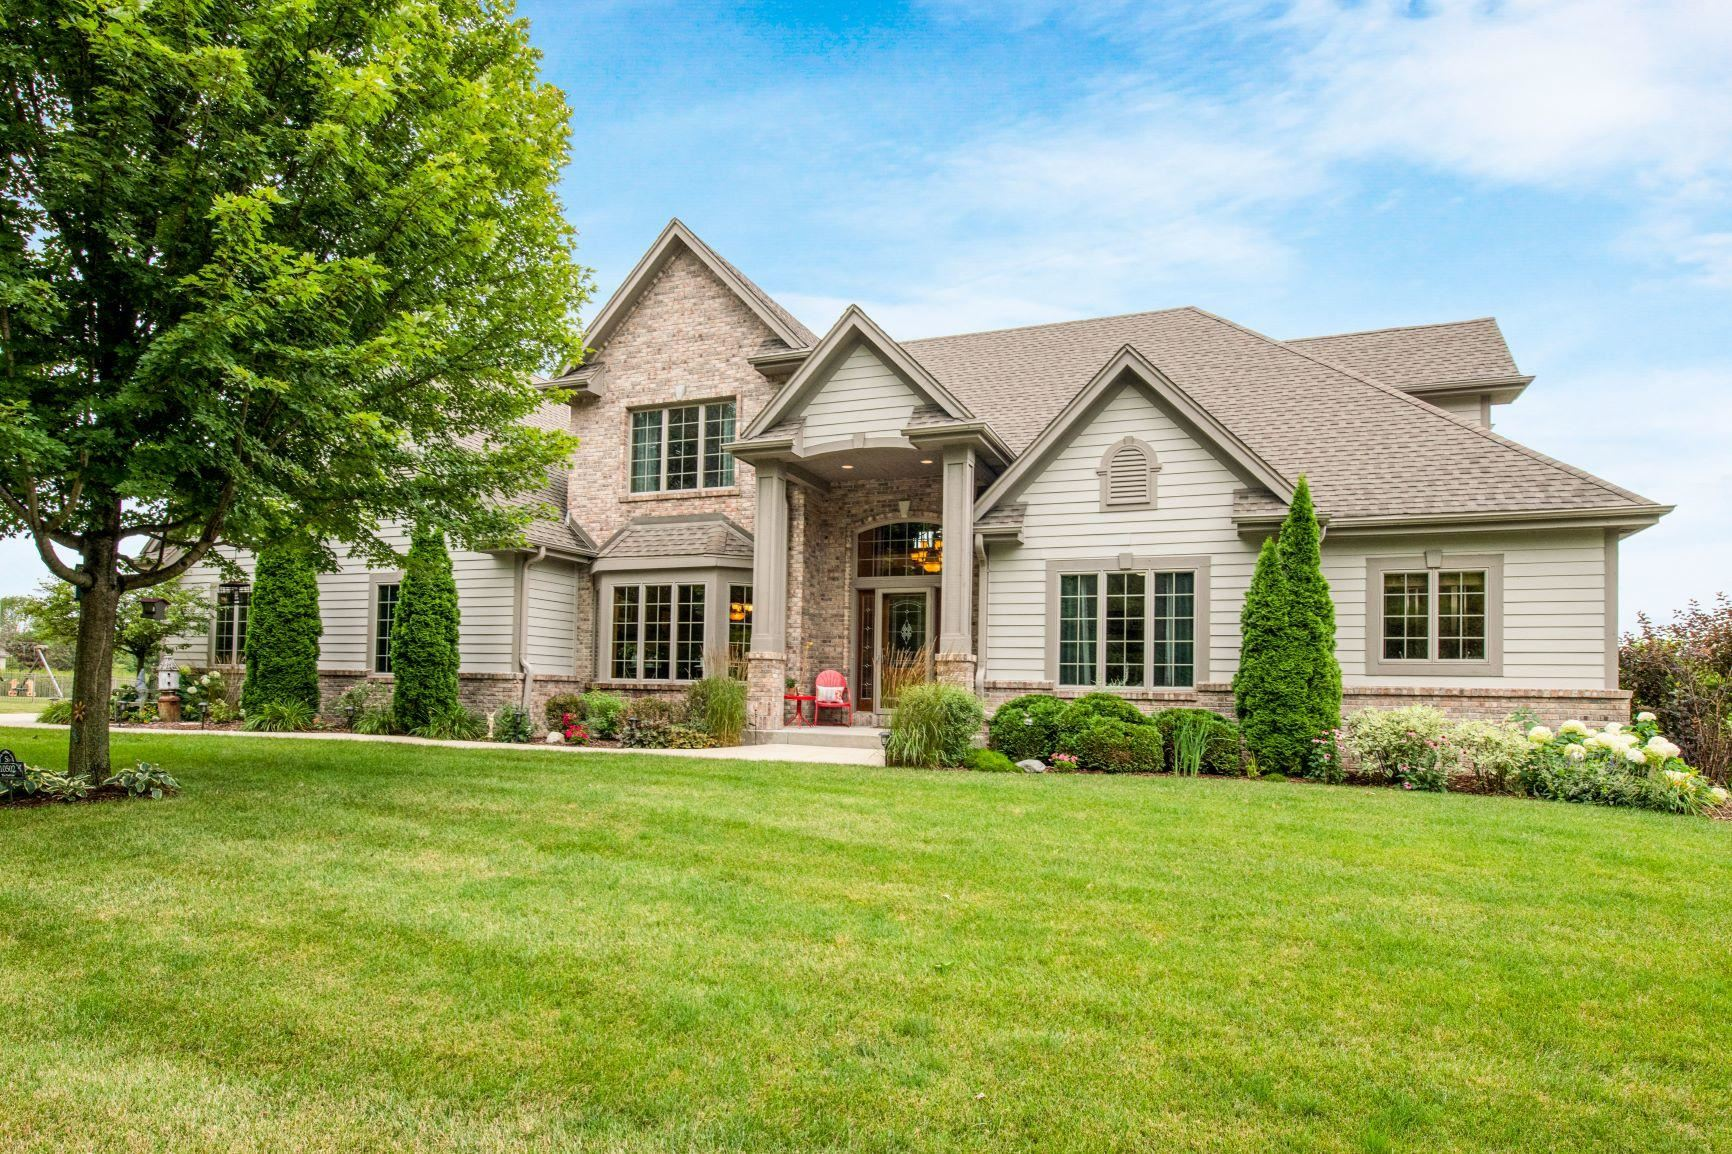 10502 N Stone Creek Dr, Mequon, WI 53092 - #: 1702636